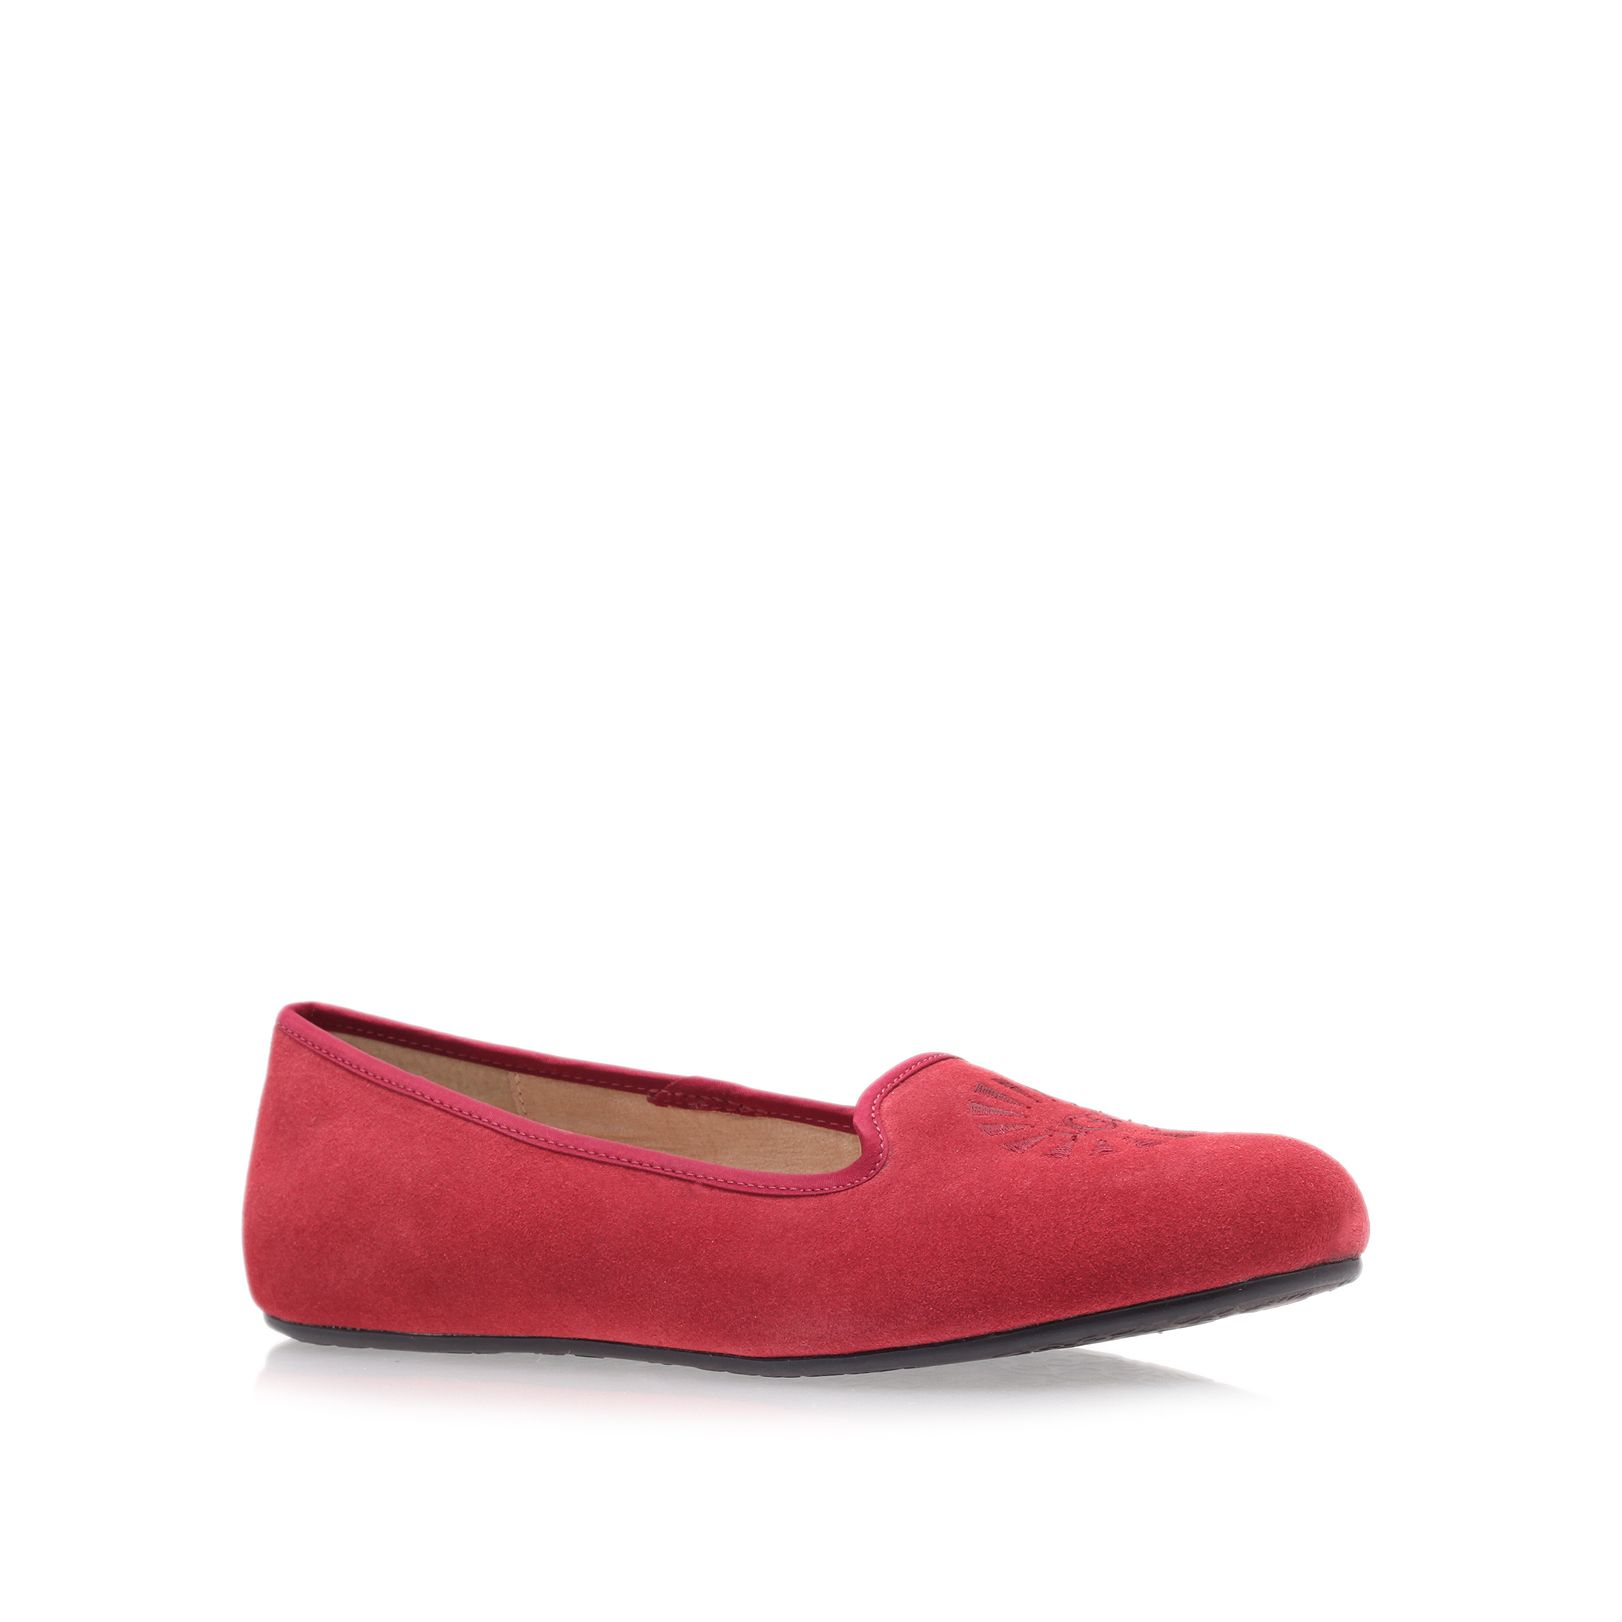 Alloway ugg suede slip-on shoes